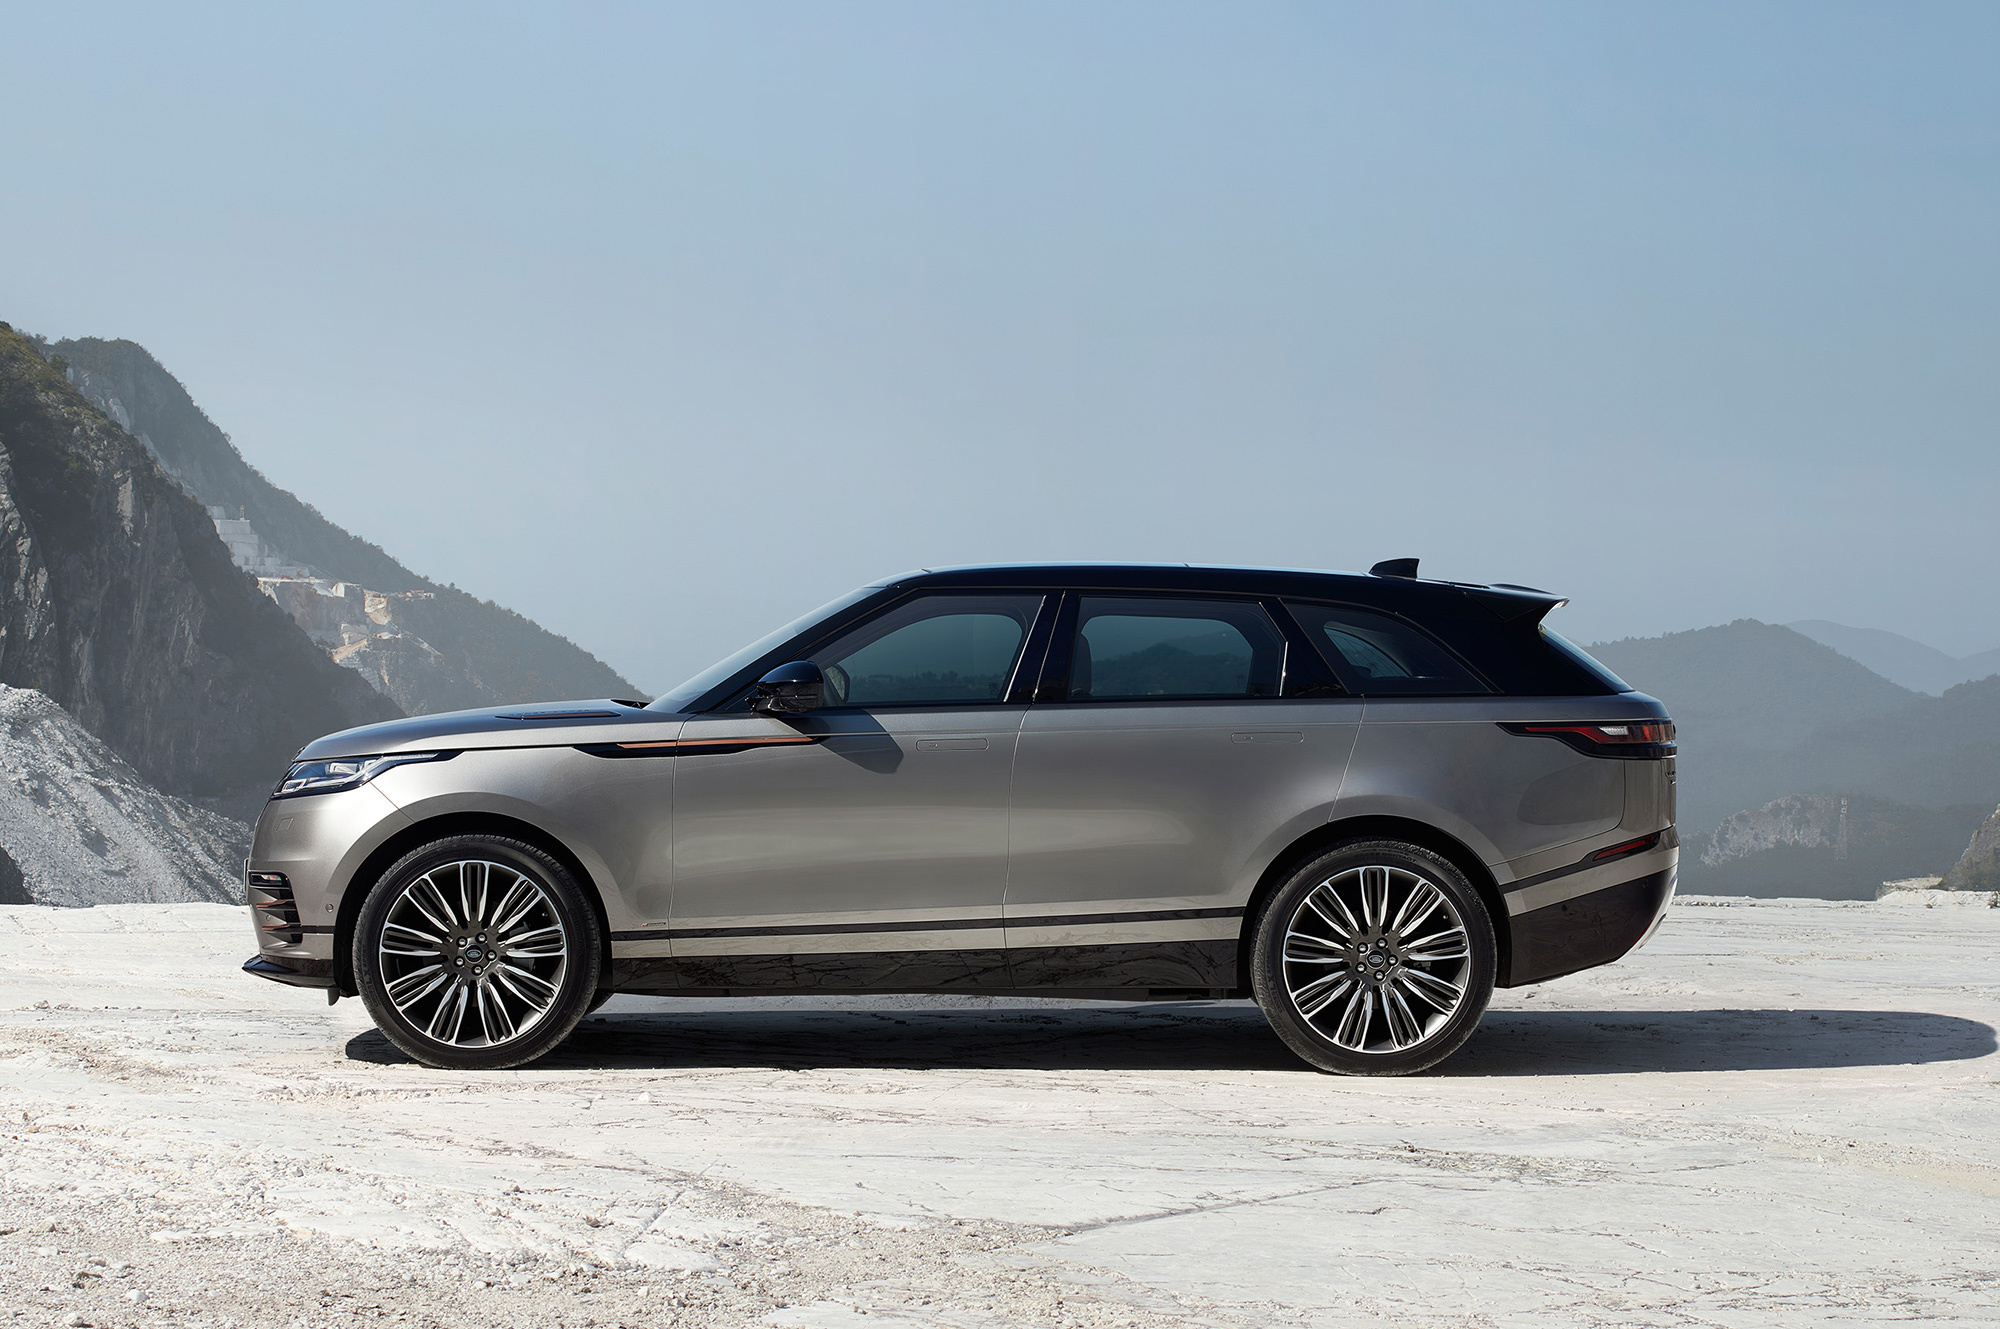 Range Rover Velar For Desktop Background